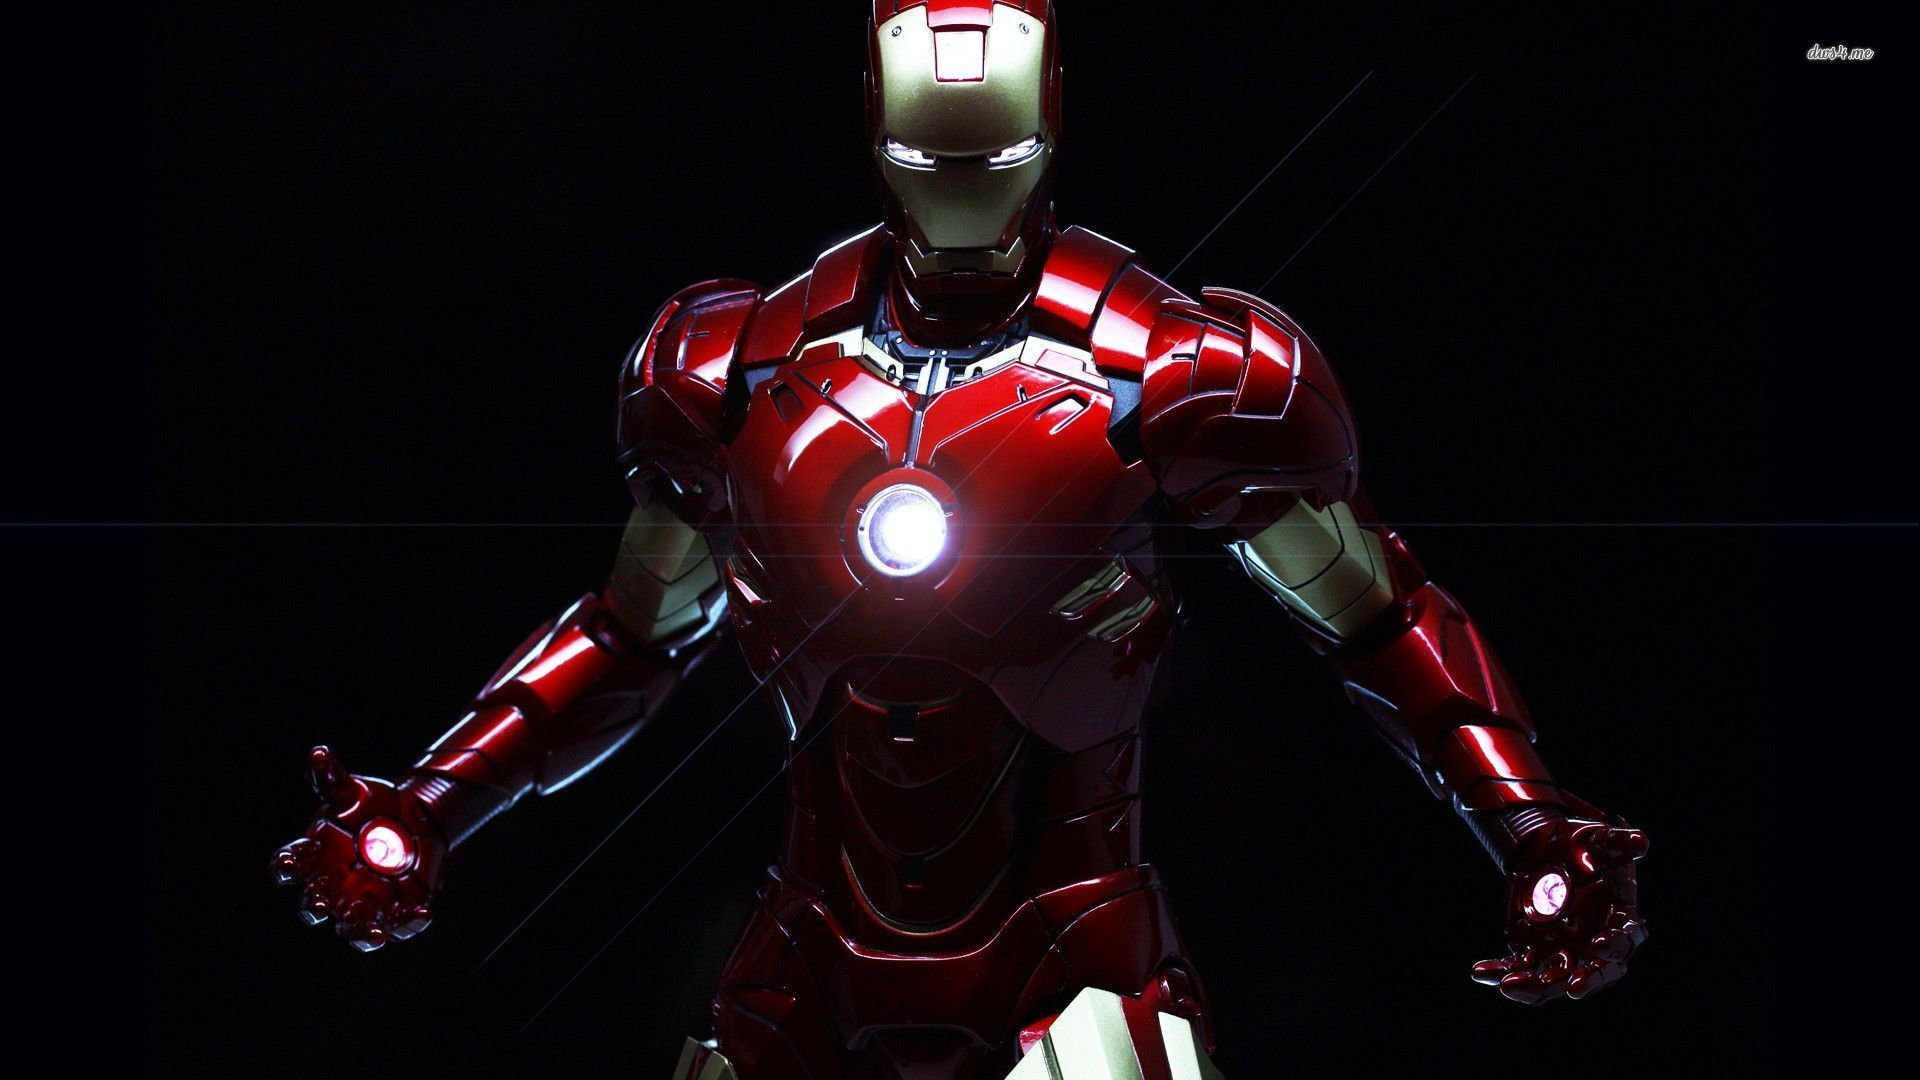 iron man live wallpaper android apps on google play 1024a—768 iron man 3 wallpaper 44 wallpapers adorable wallpapers desktop pinterest live